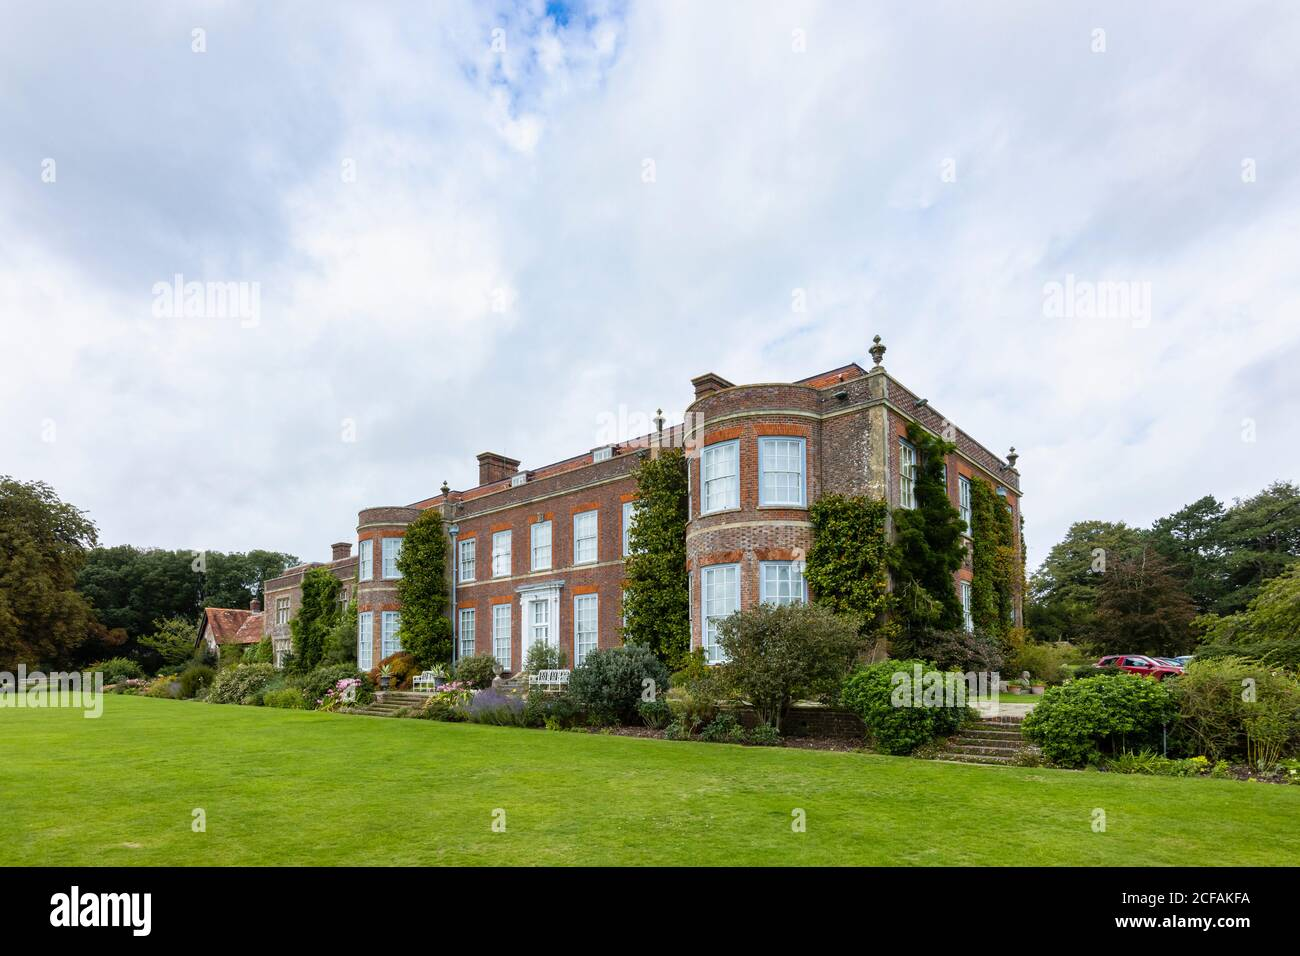 The historic country house stately home at Hinton Ampner, Bramdean, near Alresford, Hampshire, southern England Stock Photo